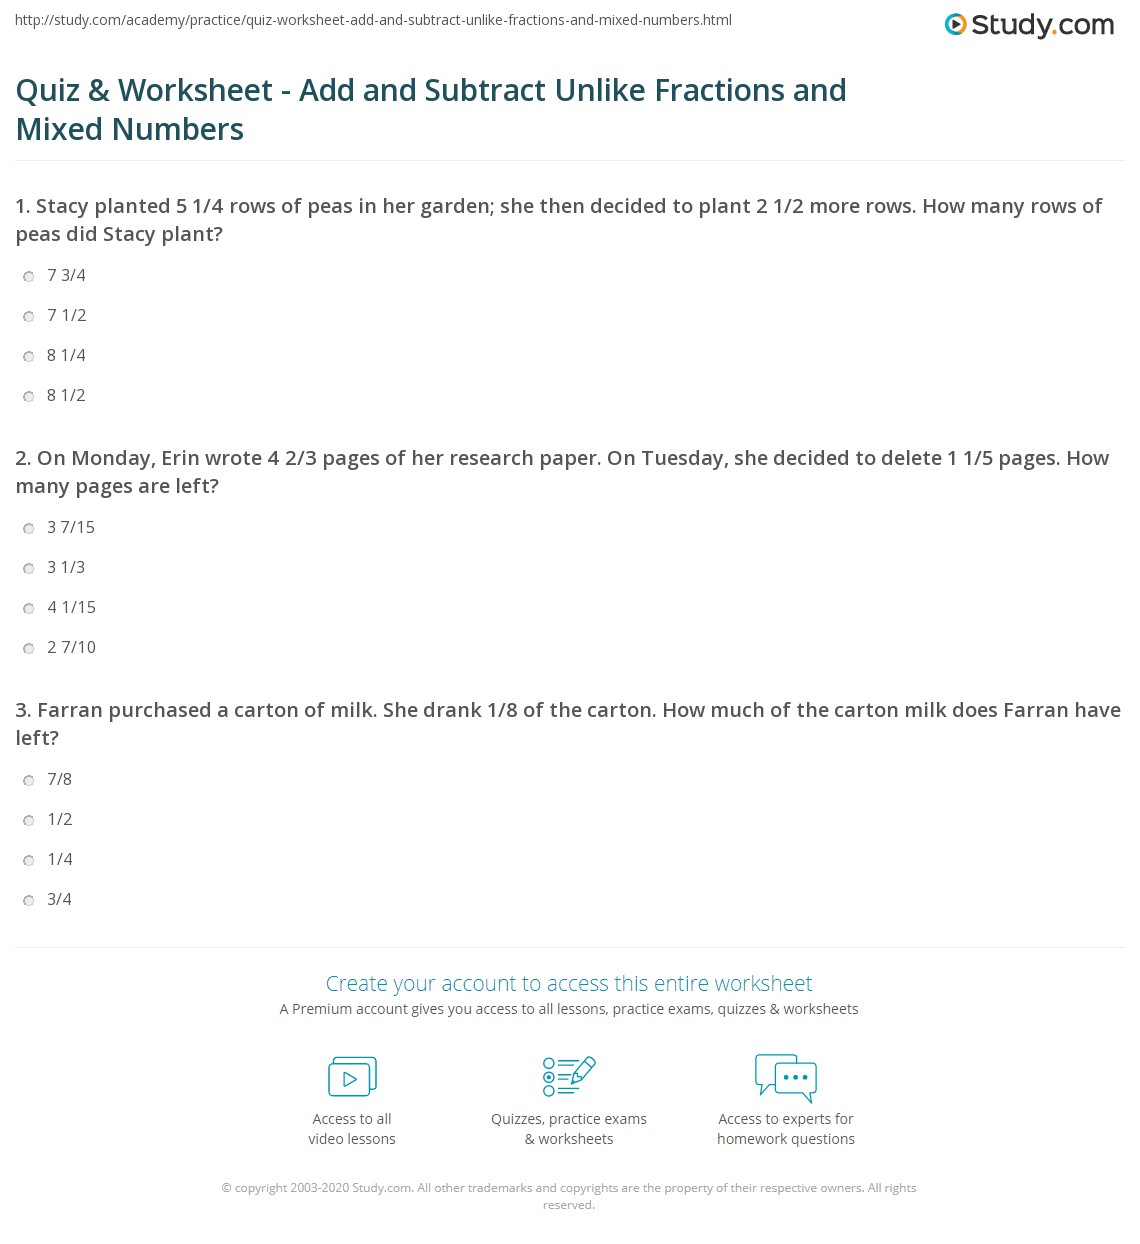 math worksheet : quiz  worksheet  add and subtract unlike fractions and mixed  : Subtracting Unlike Fractions Worksheets